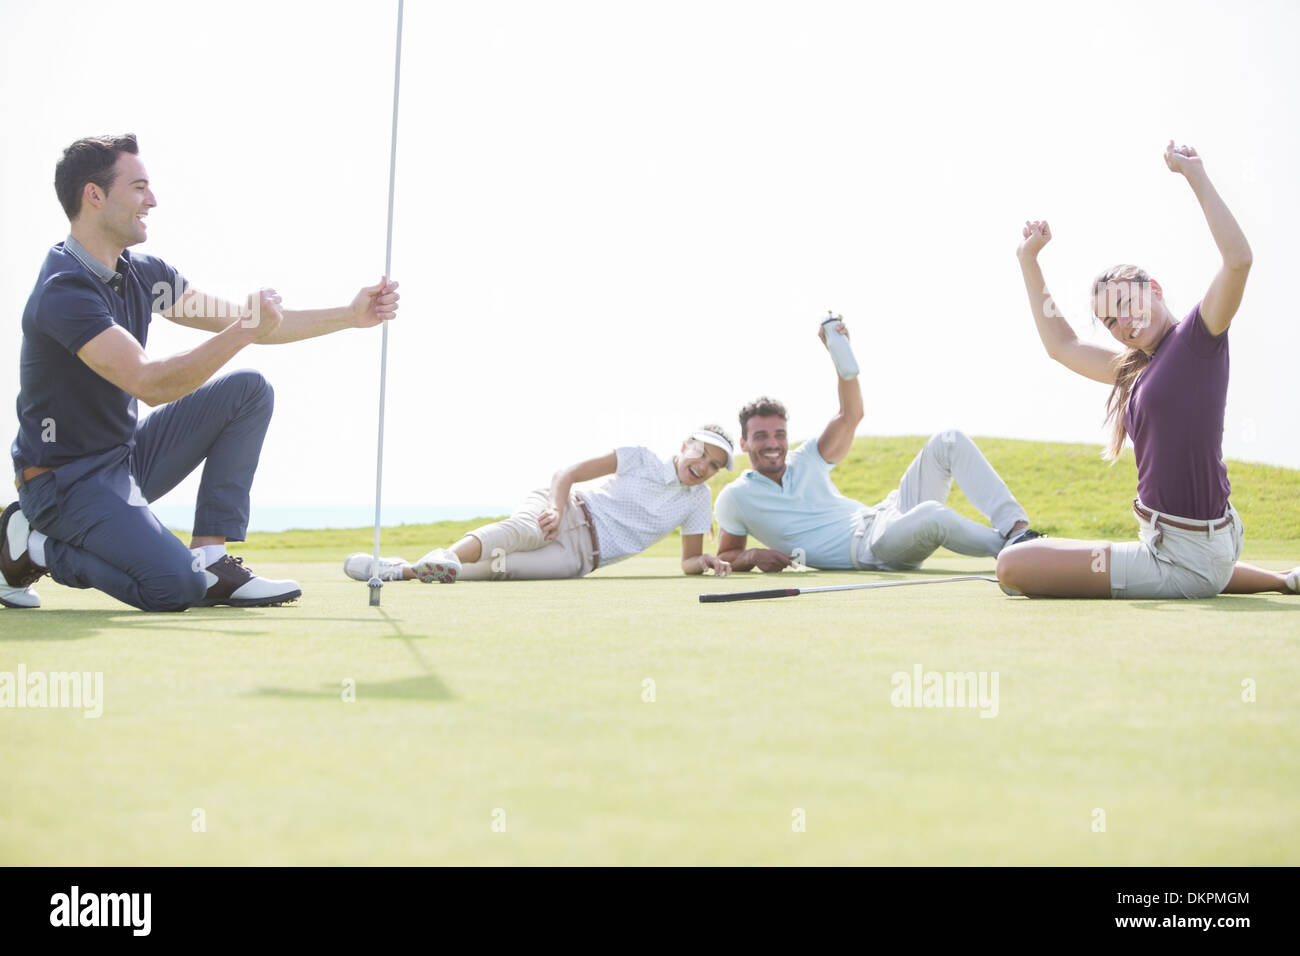 Friends cheering near hole on golf course - Stock Image